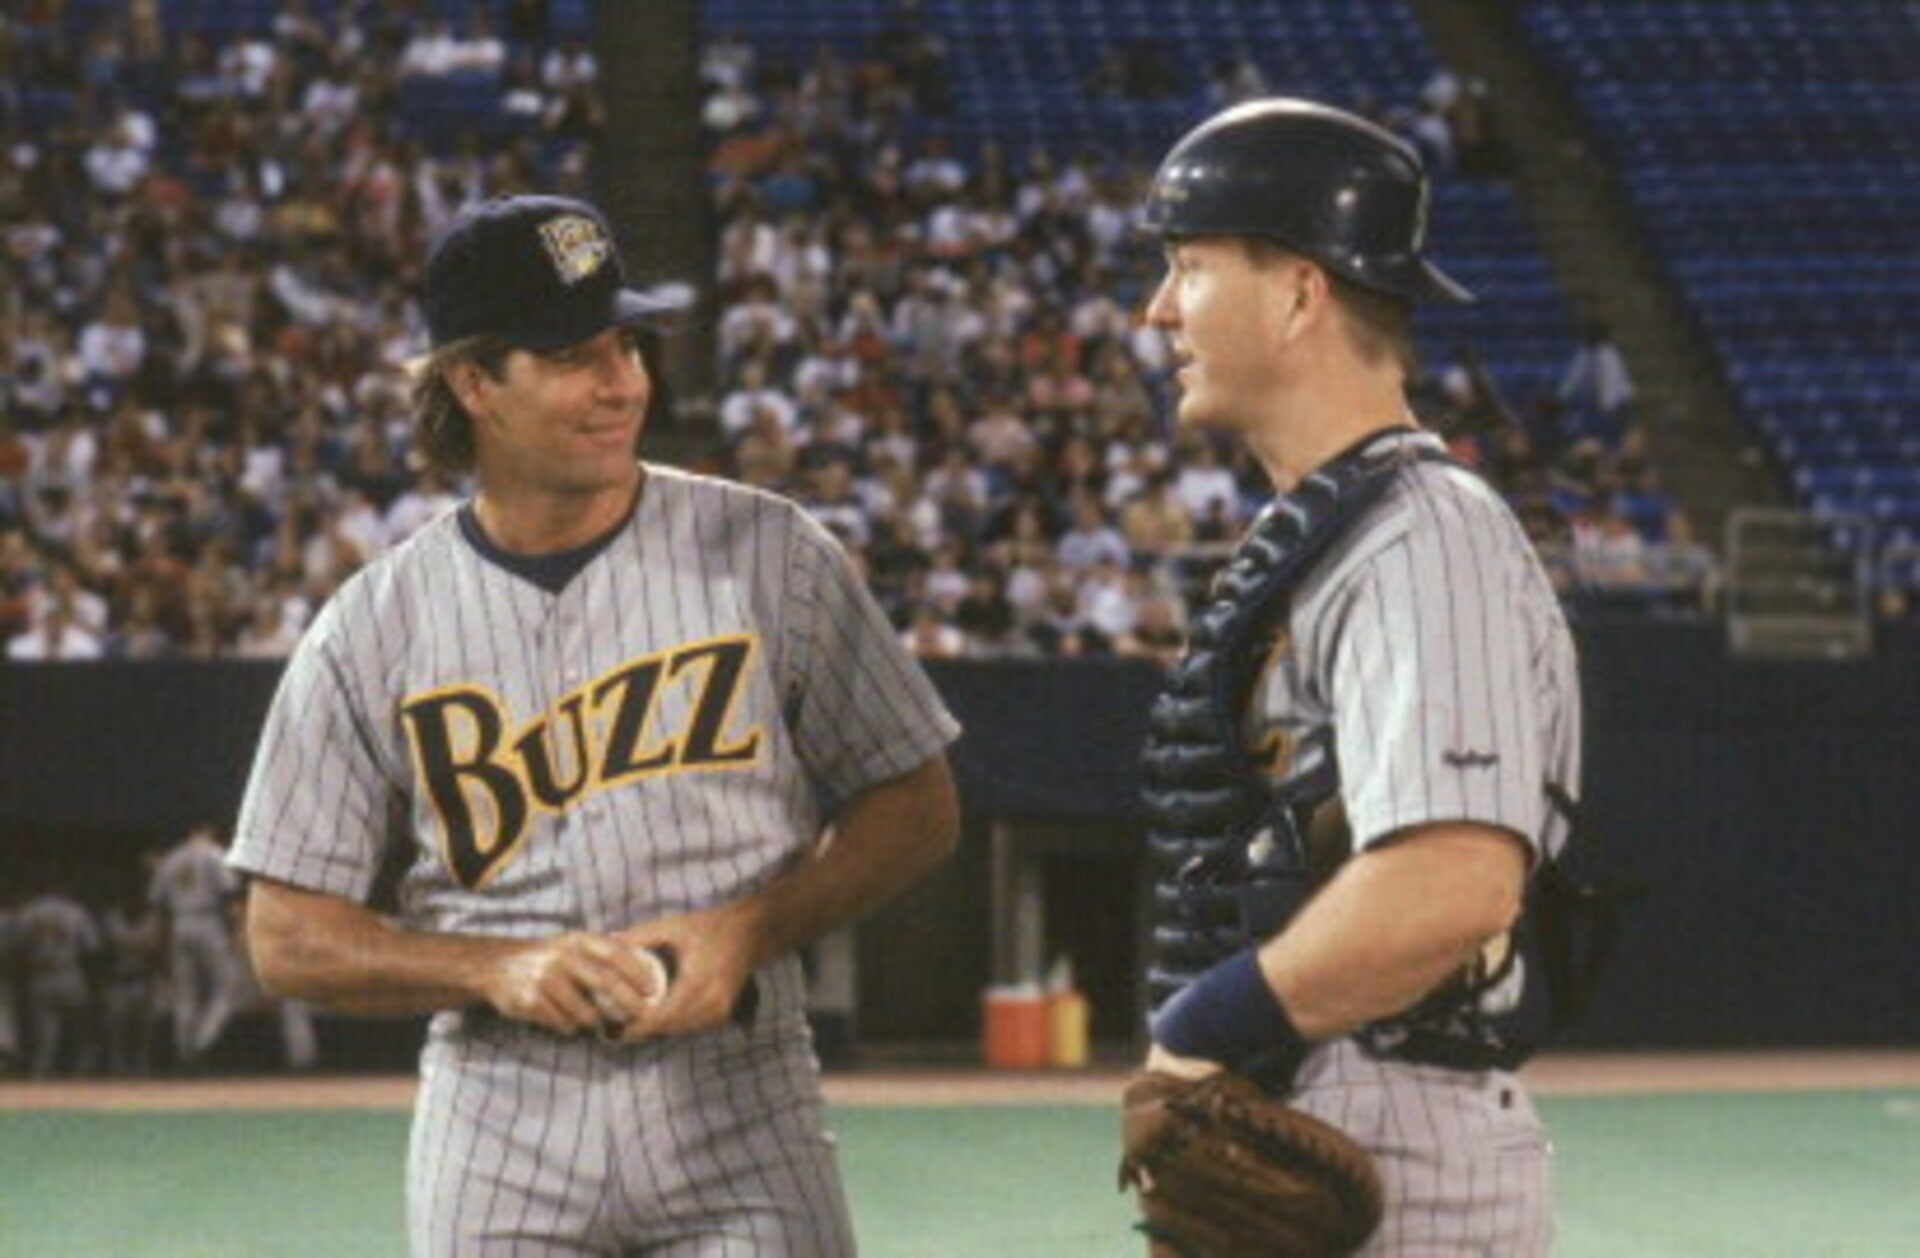 Major League: Back to the Minors - Image 5